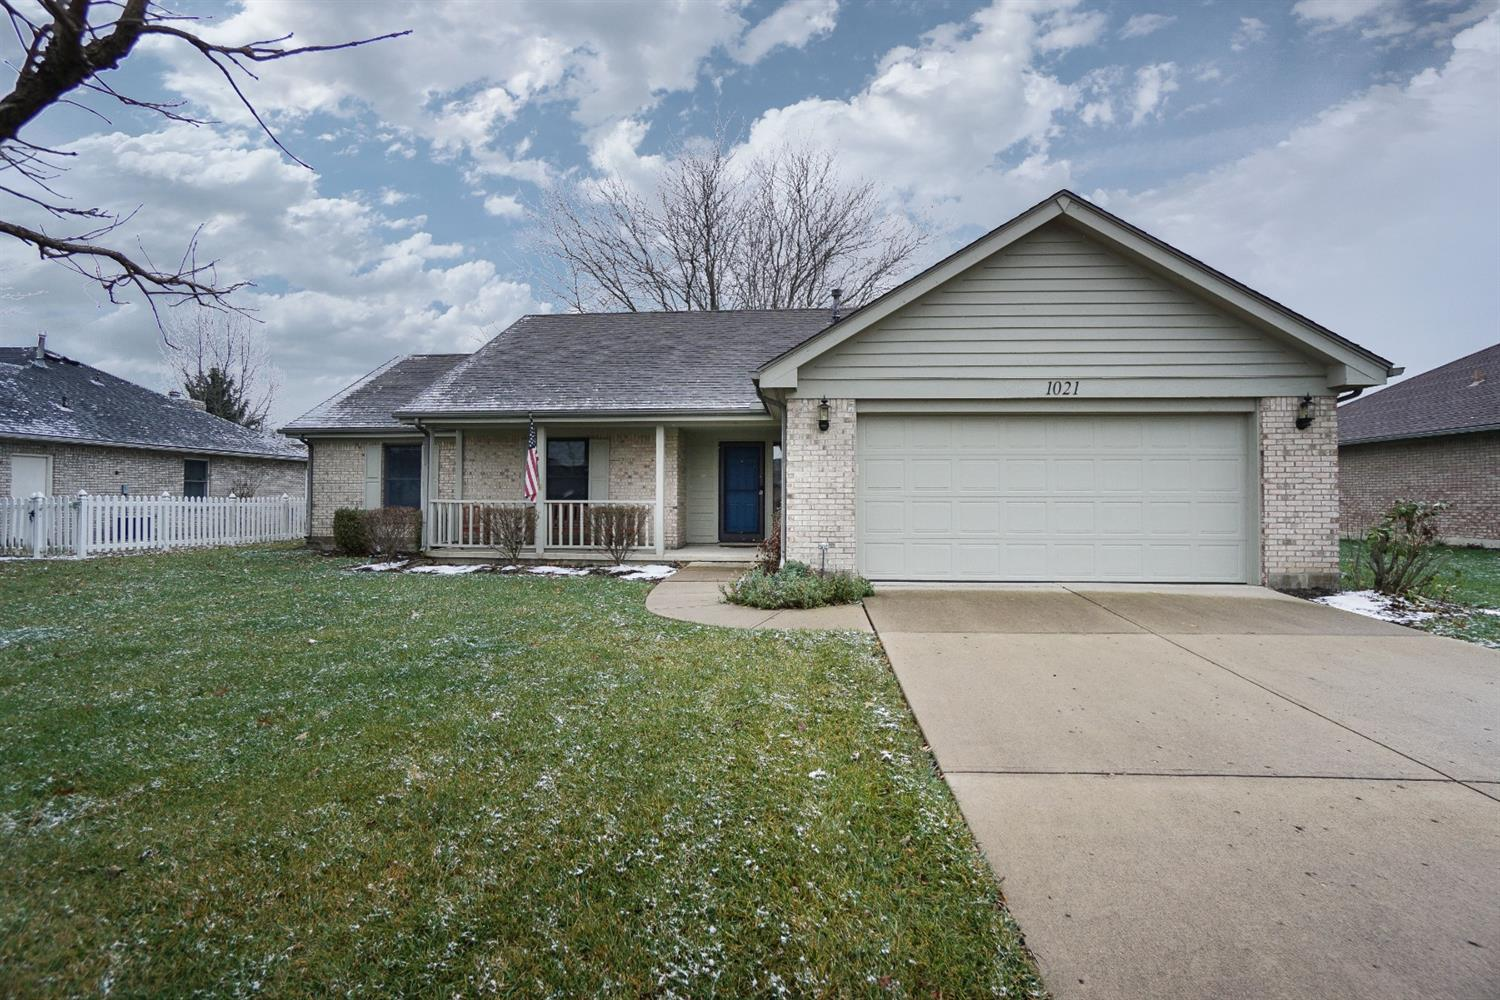 Property for sale at 1021 Crede Way, Waynesville,  Ohio 45068